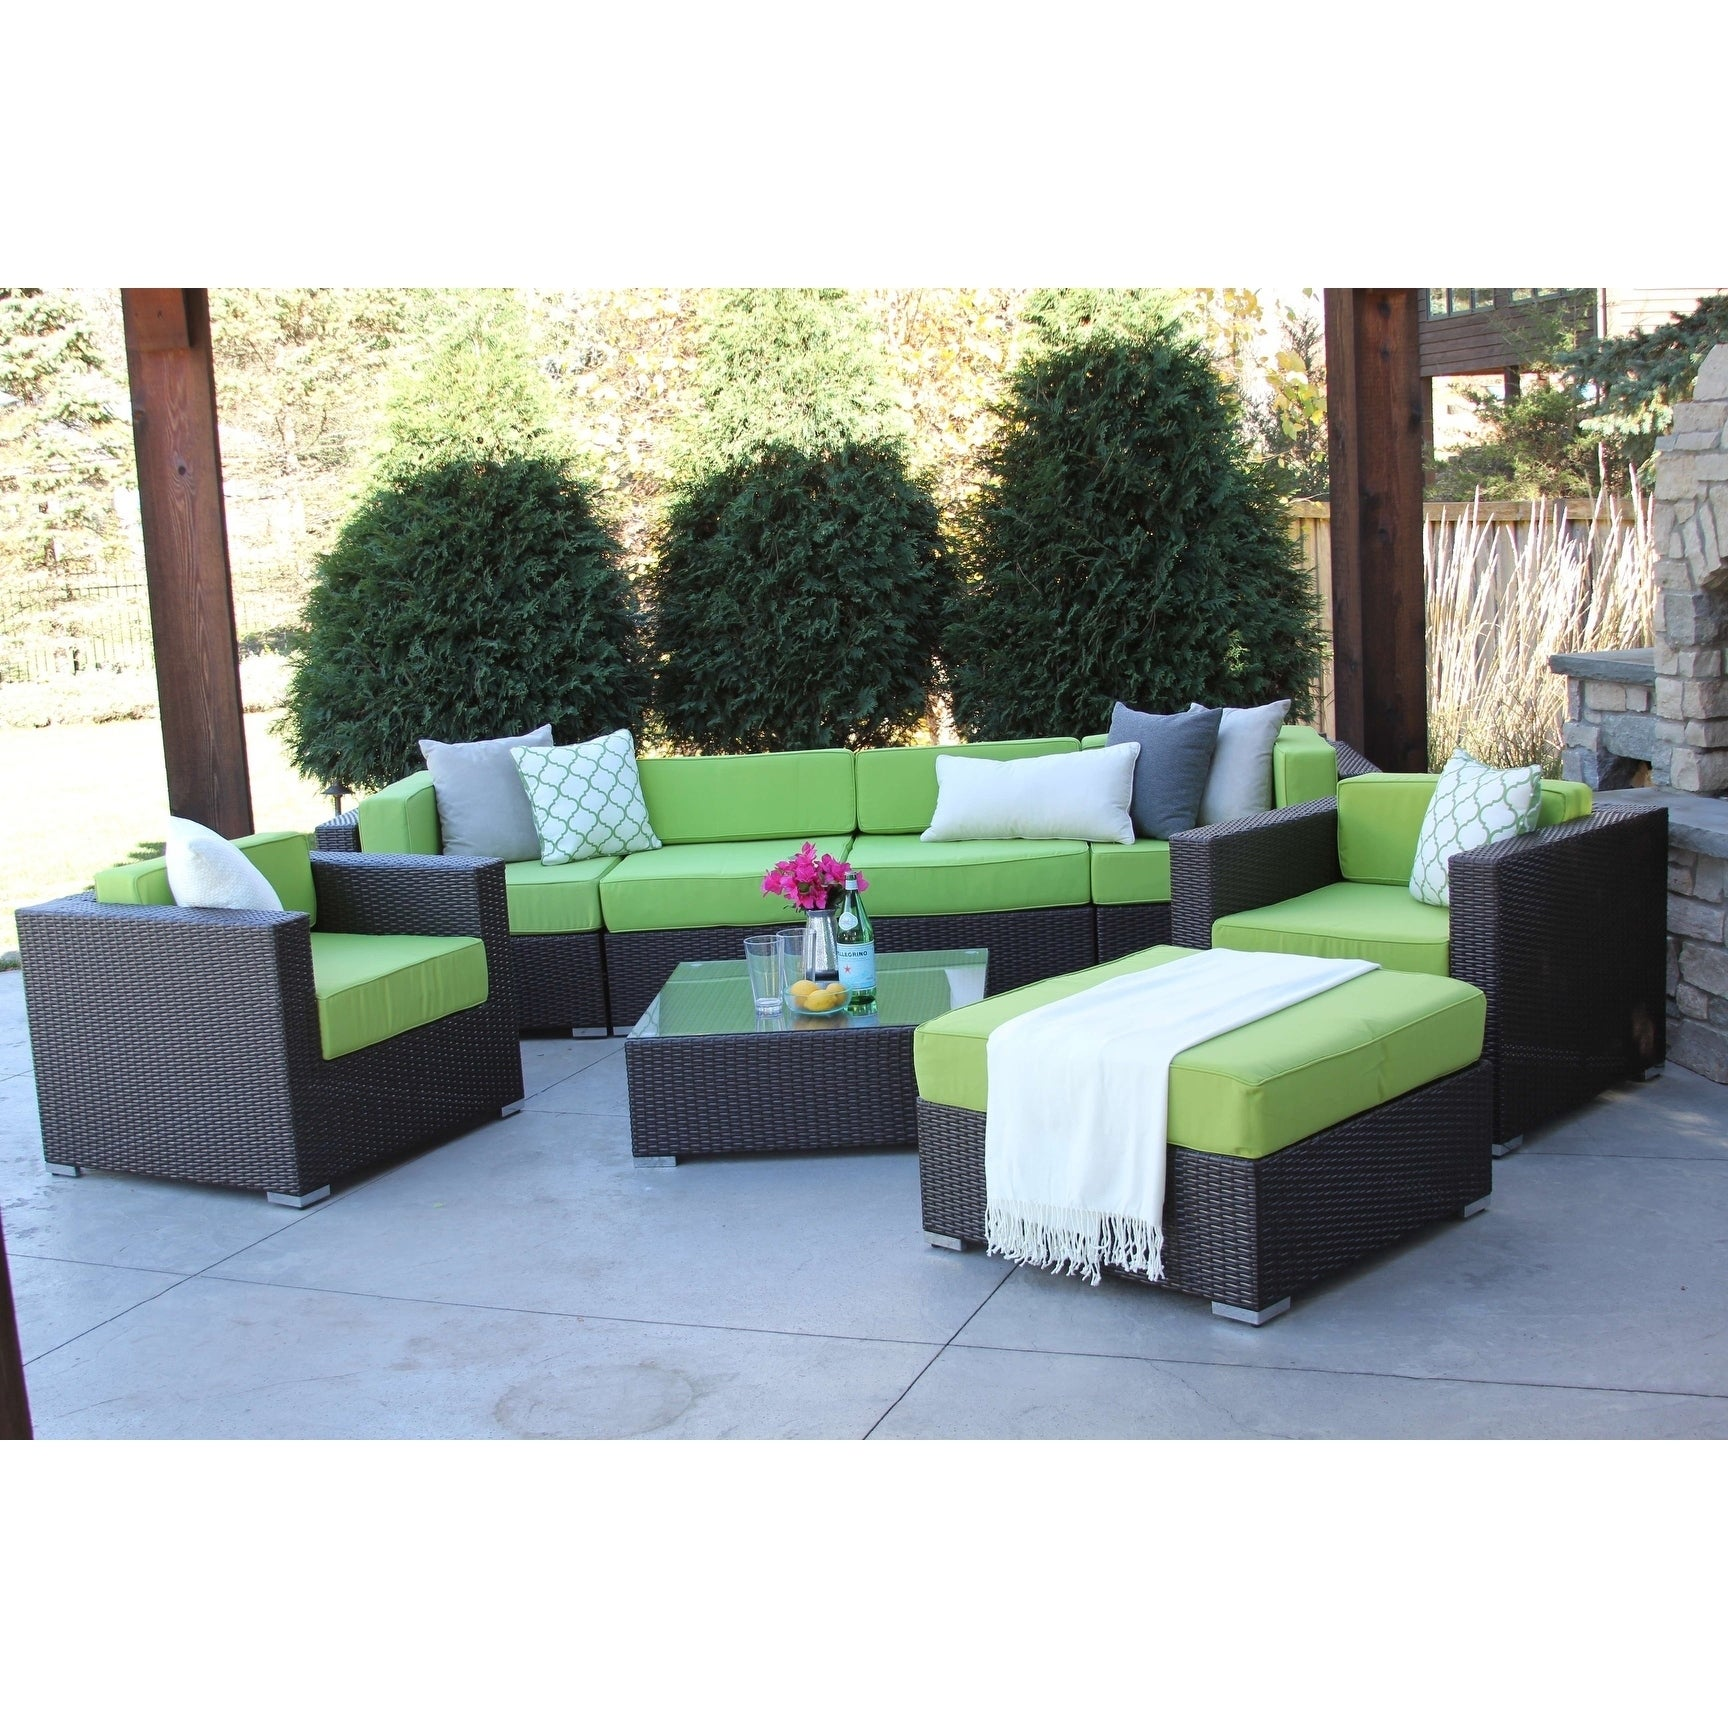 Hiawatha 8 pc modern outdoor rattan patio furniture sofa set modular